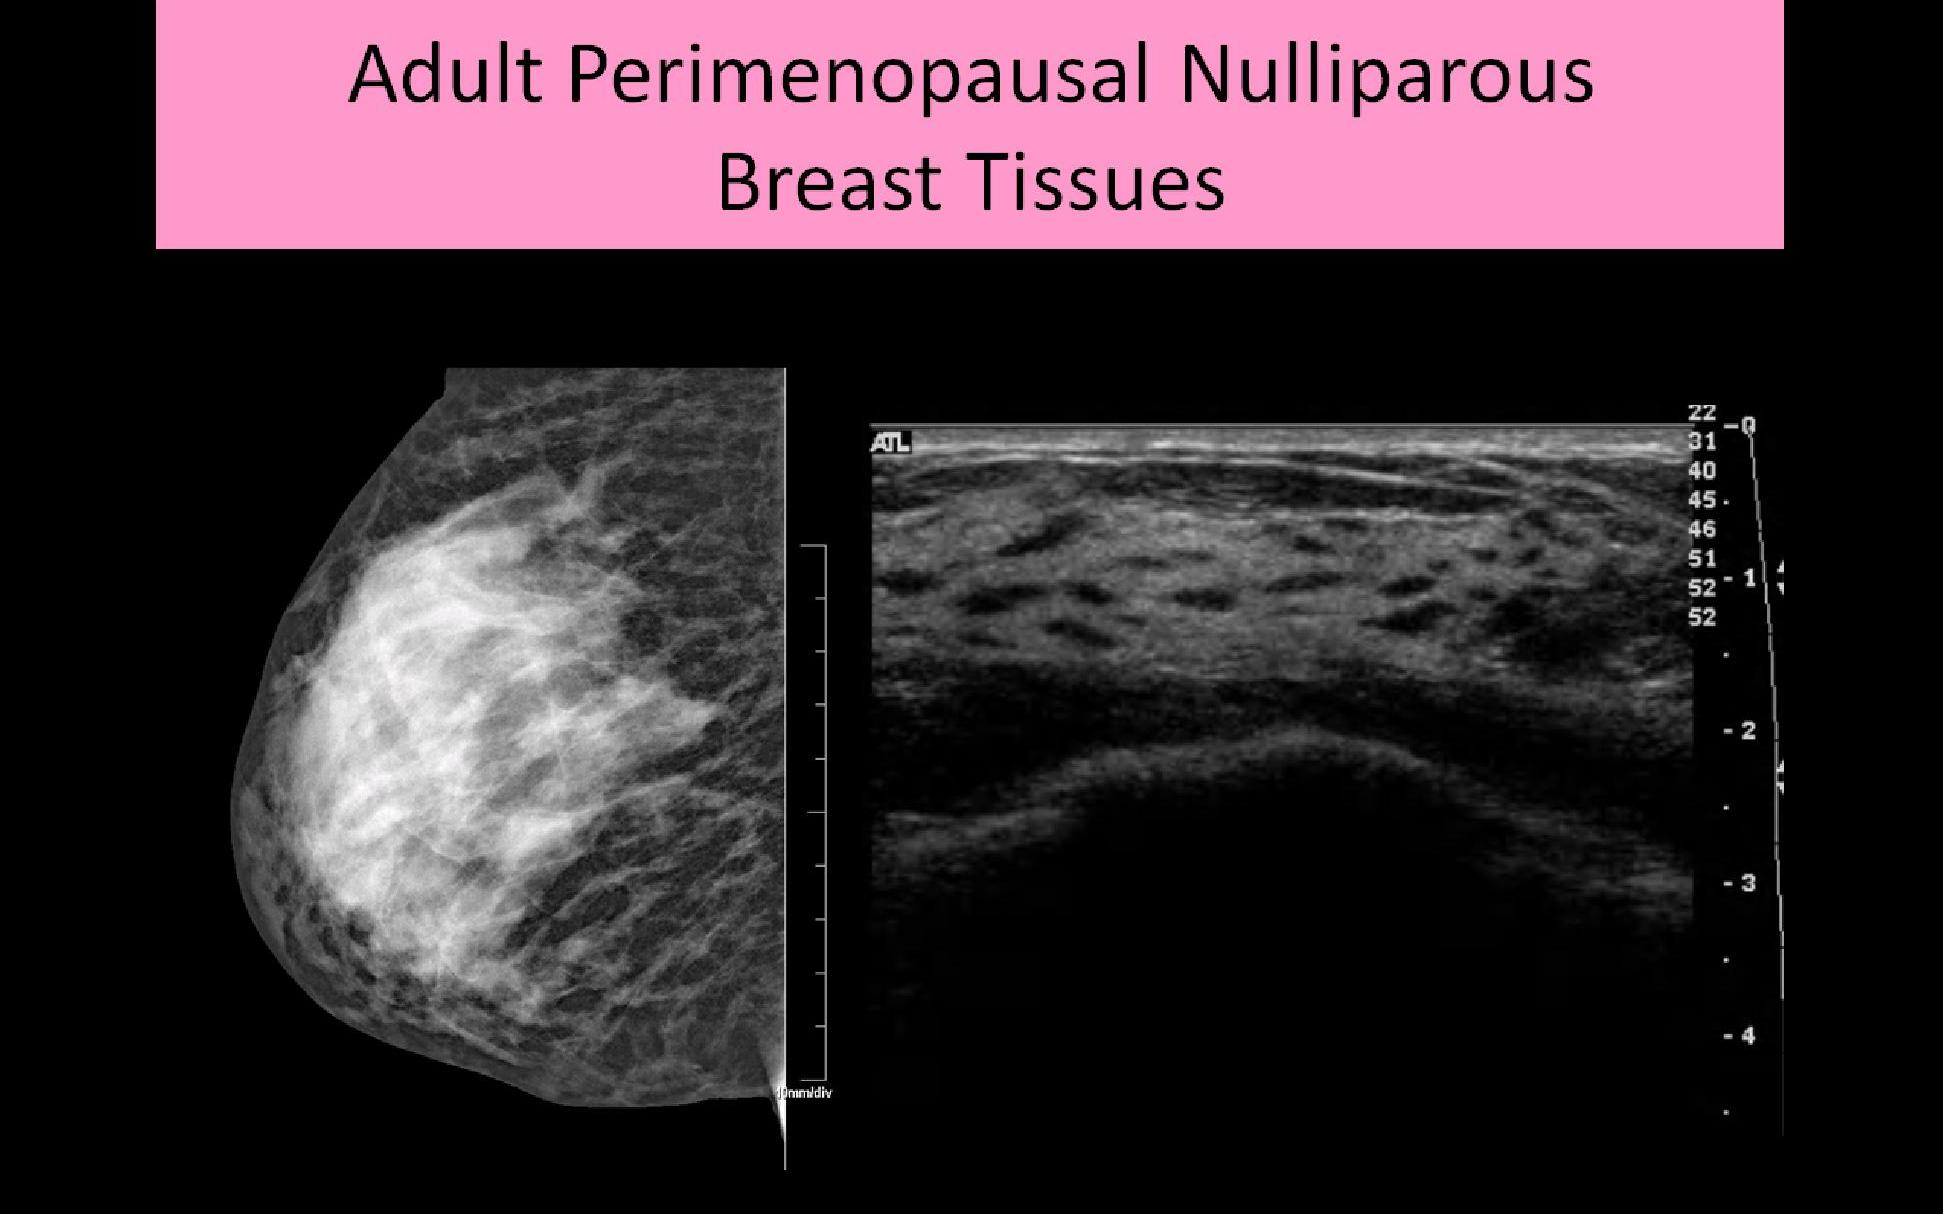 how to tell abnormal normal breat lump